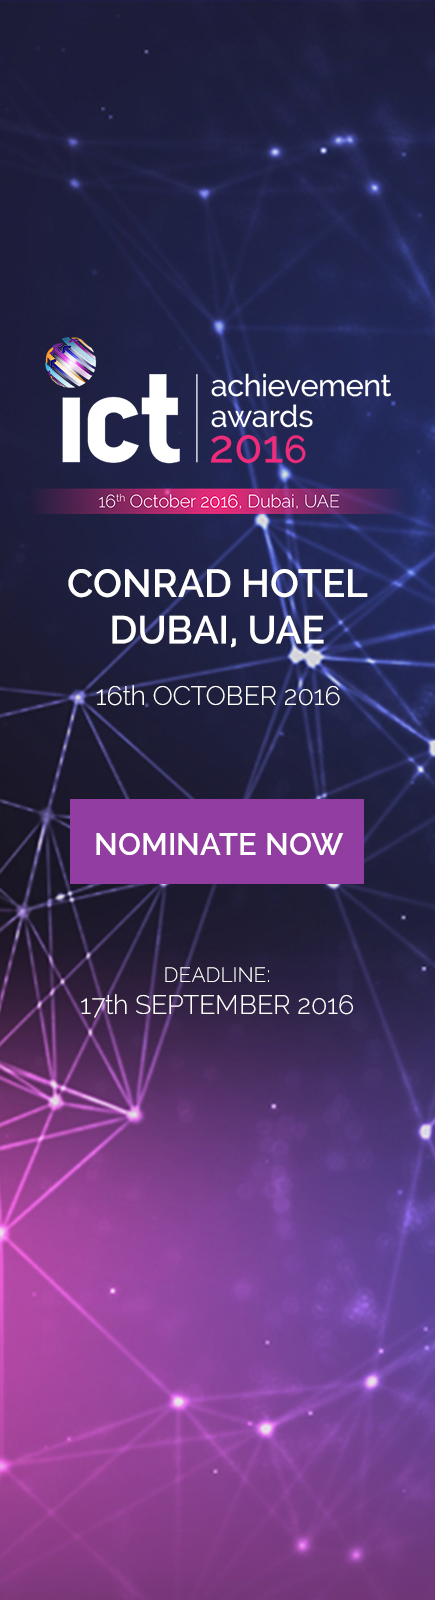 ICT Achievement Awards 2016 Nomination